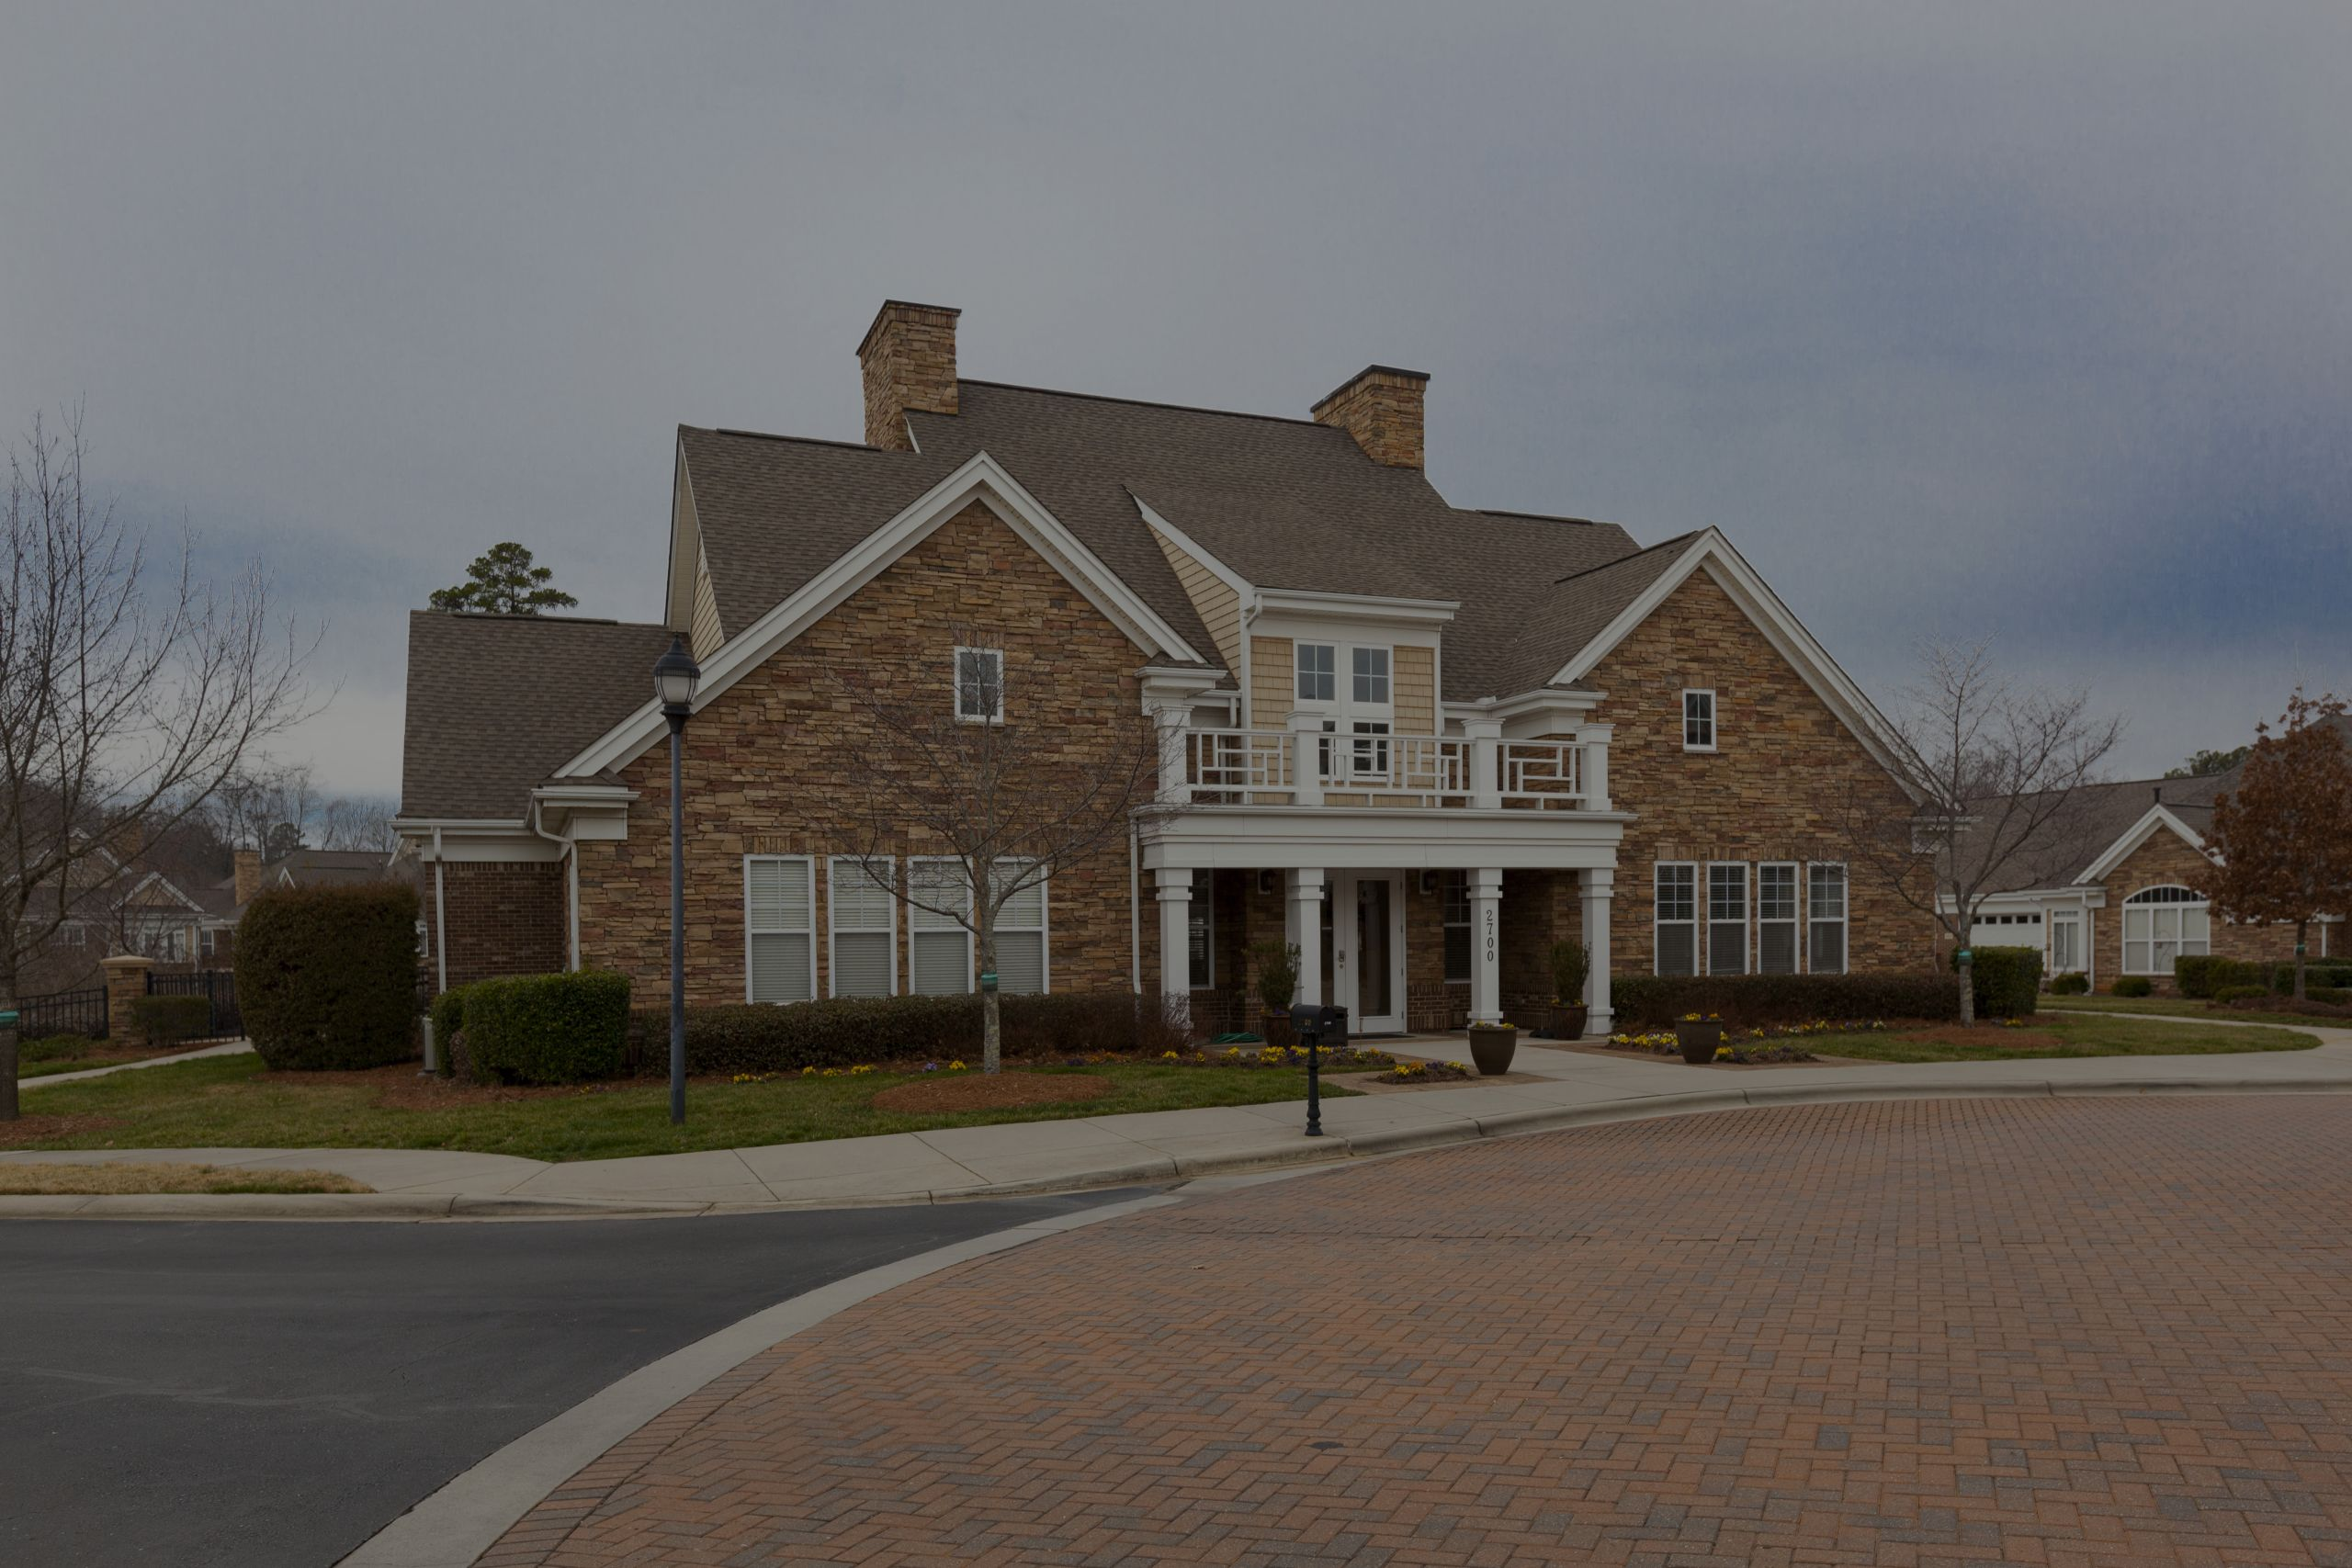 Bella Sera Villas, A Private Community in Matthews, NC